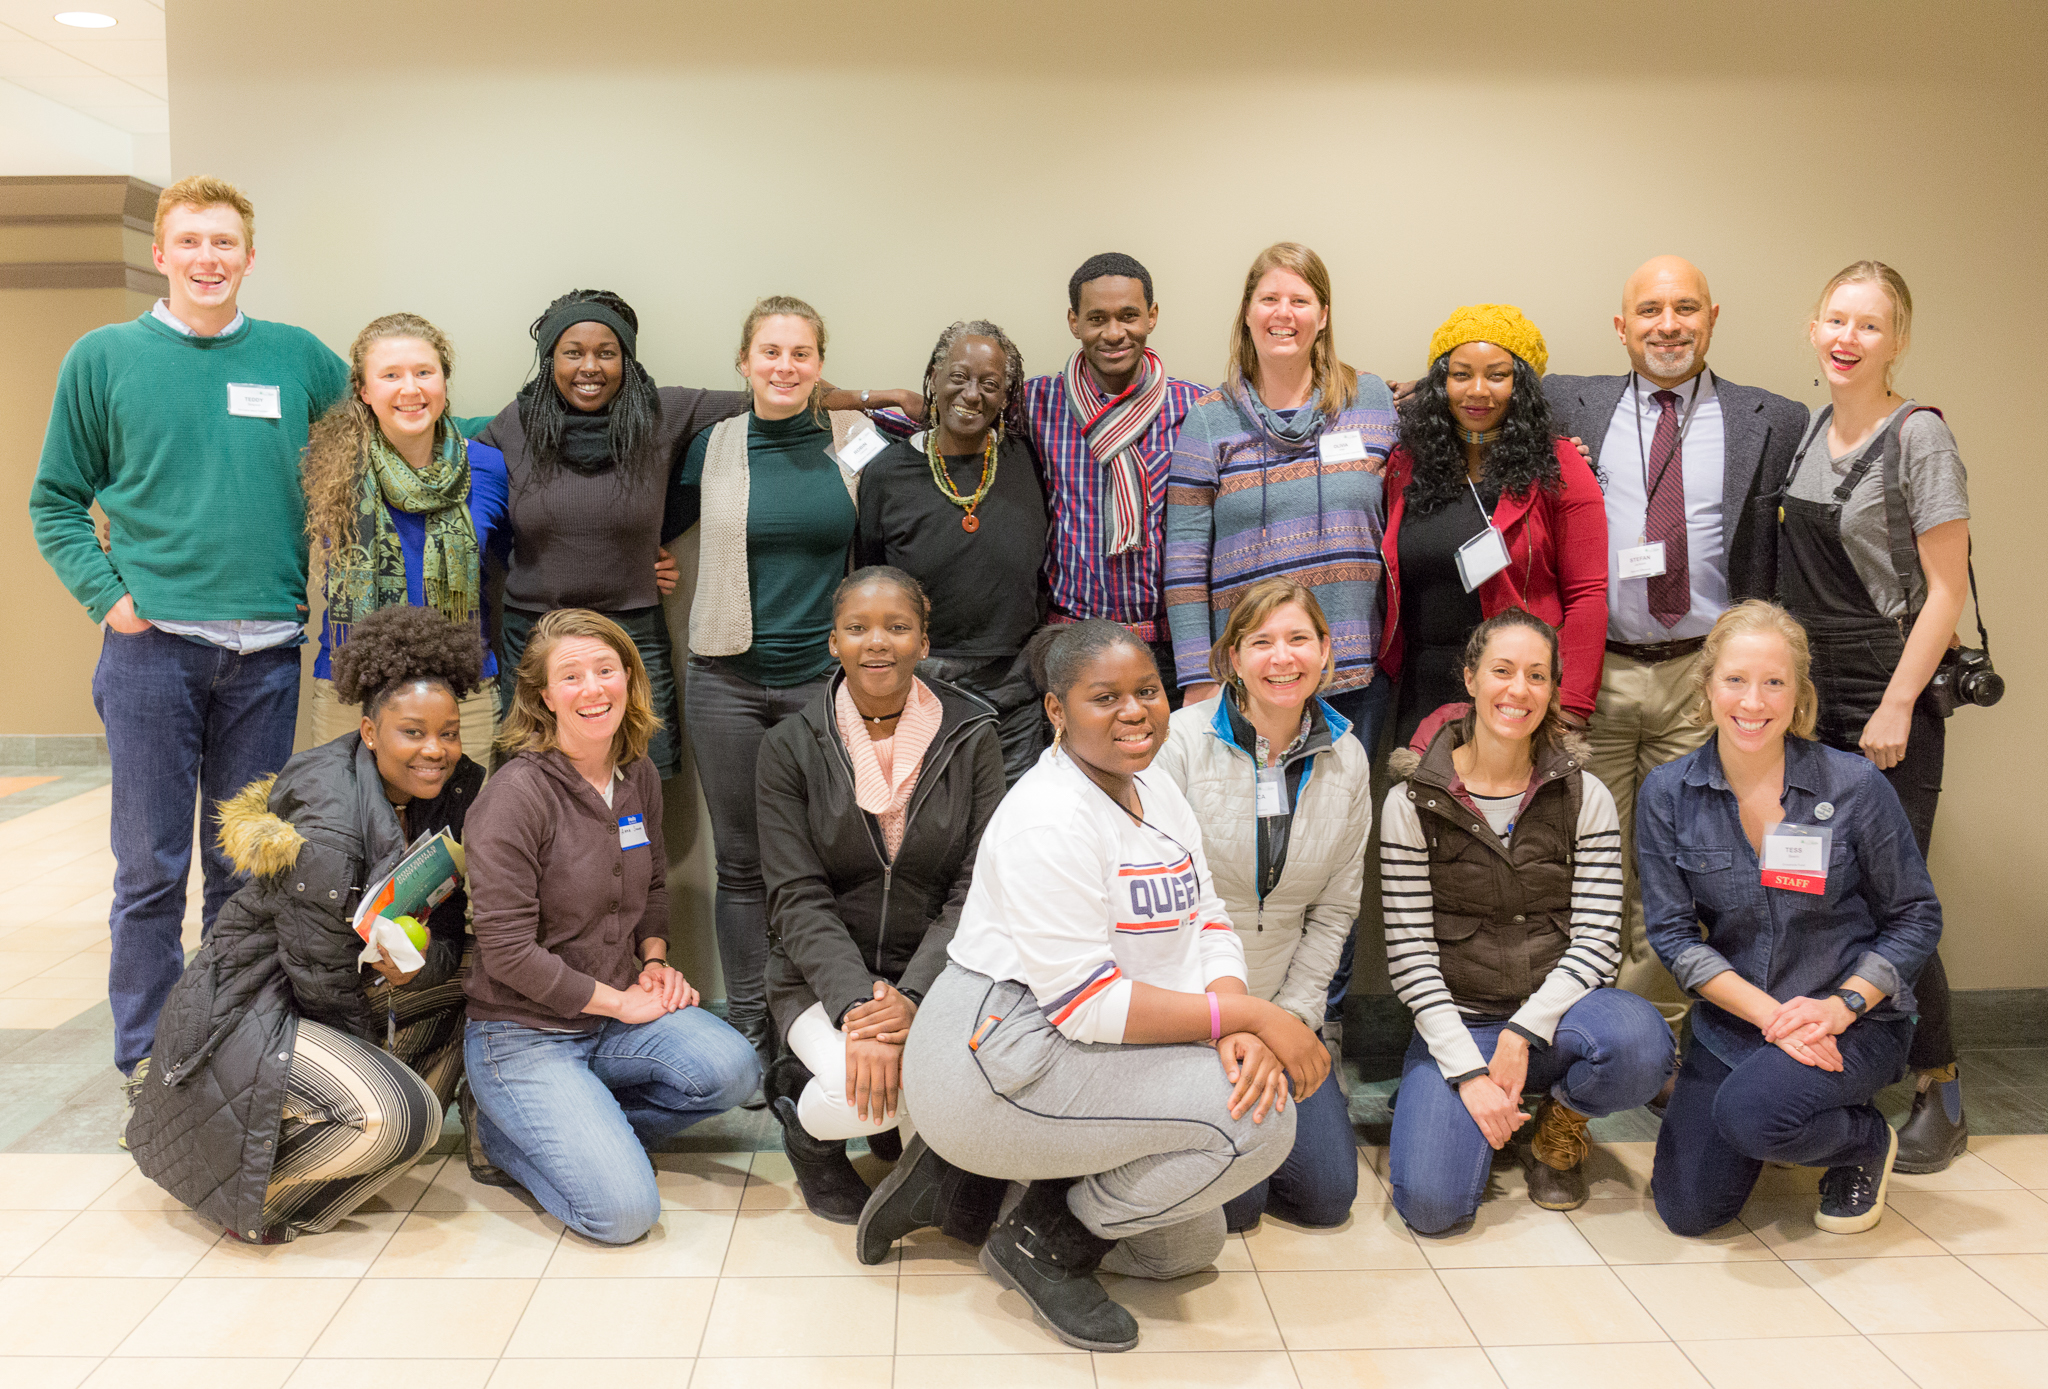 Teddy (back left), Robin (back row, fourth from left), and Maine Changemakers pause for a photo-op at the conference. Photo courtesy of  Future Focus Media Co-op .